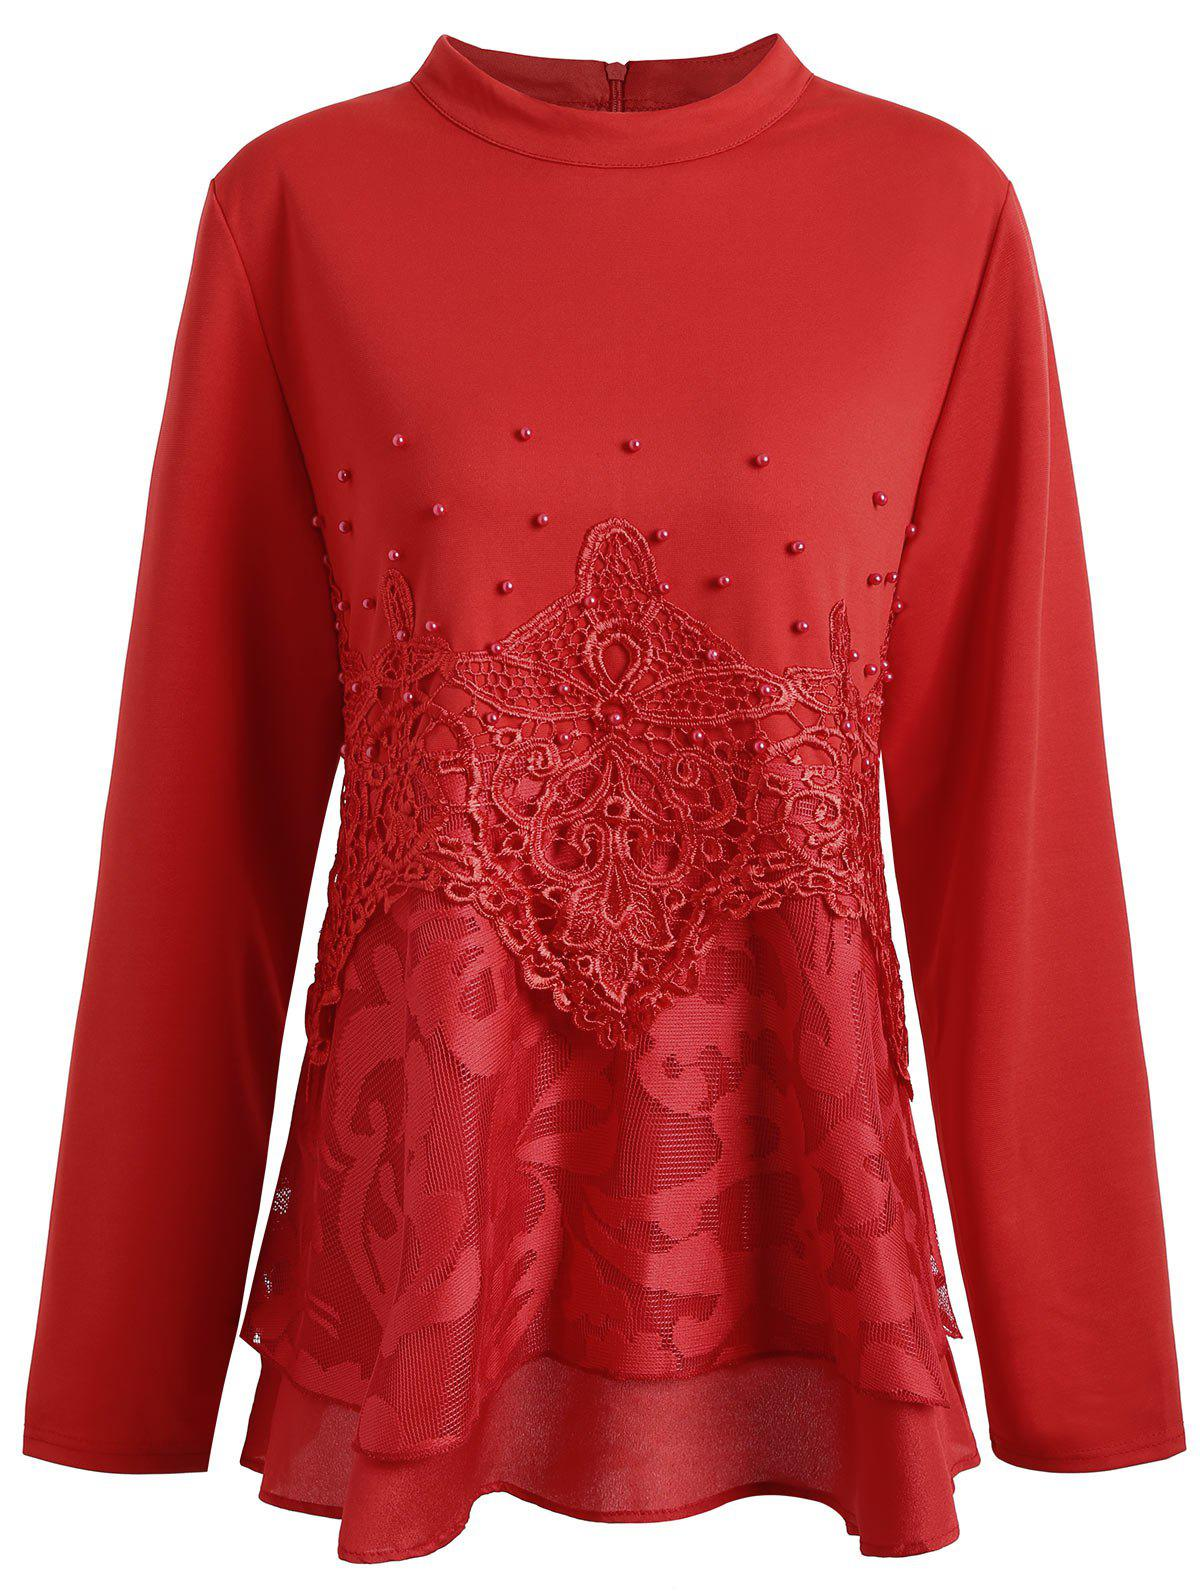 Plus Size Floral Lace Faux Pearl Embellished BlouseWOMEN<br><br>Size: 4XL; Color: RED; Material: Polyester; Shirt Length: Long; Sleeve Length: Full; Collar: High Collar; Style: Fashion; Season: Fall; Embellishment: Lace,Pearls; Pattern Type: Solid; Weight: 0.4400kg; Package Contents: 1 x Blouse;